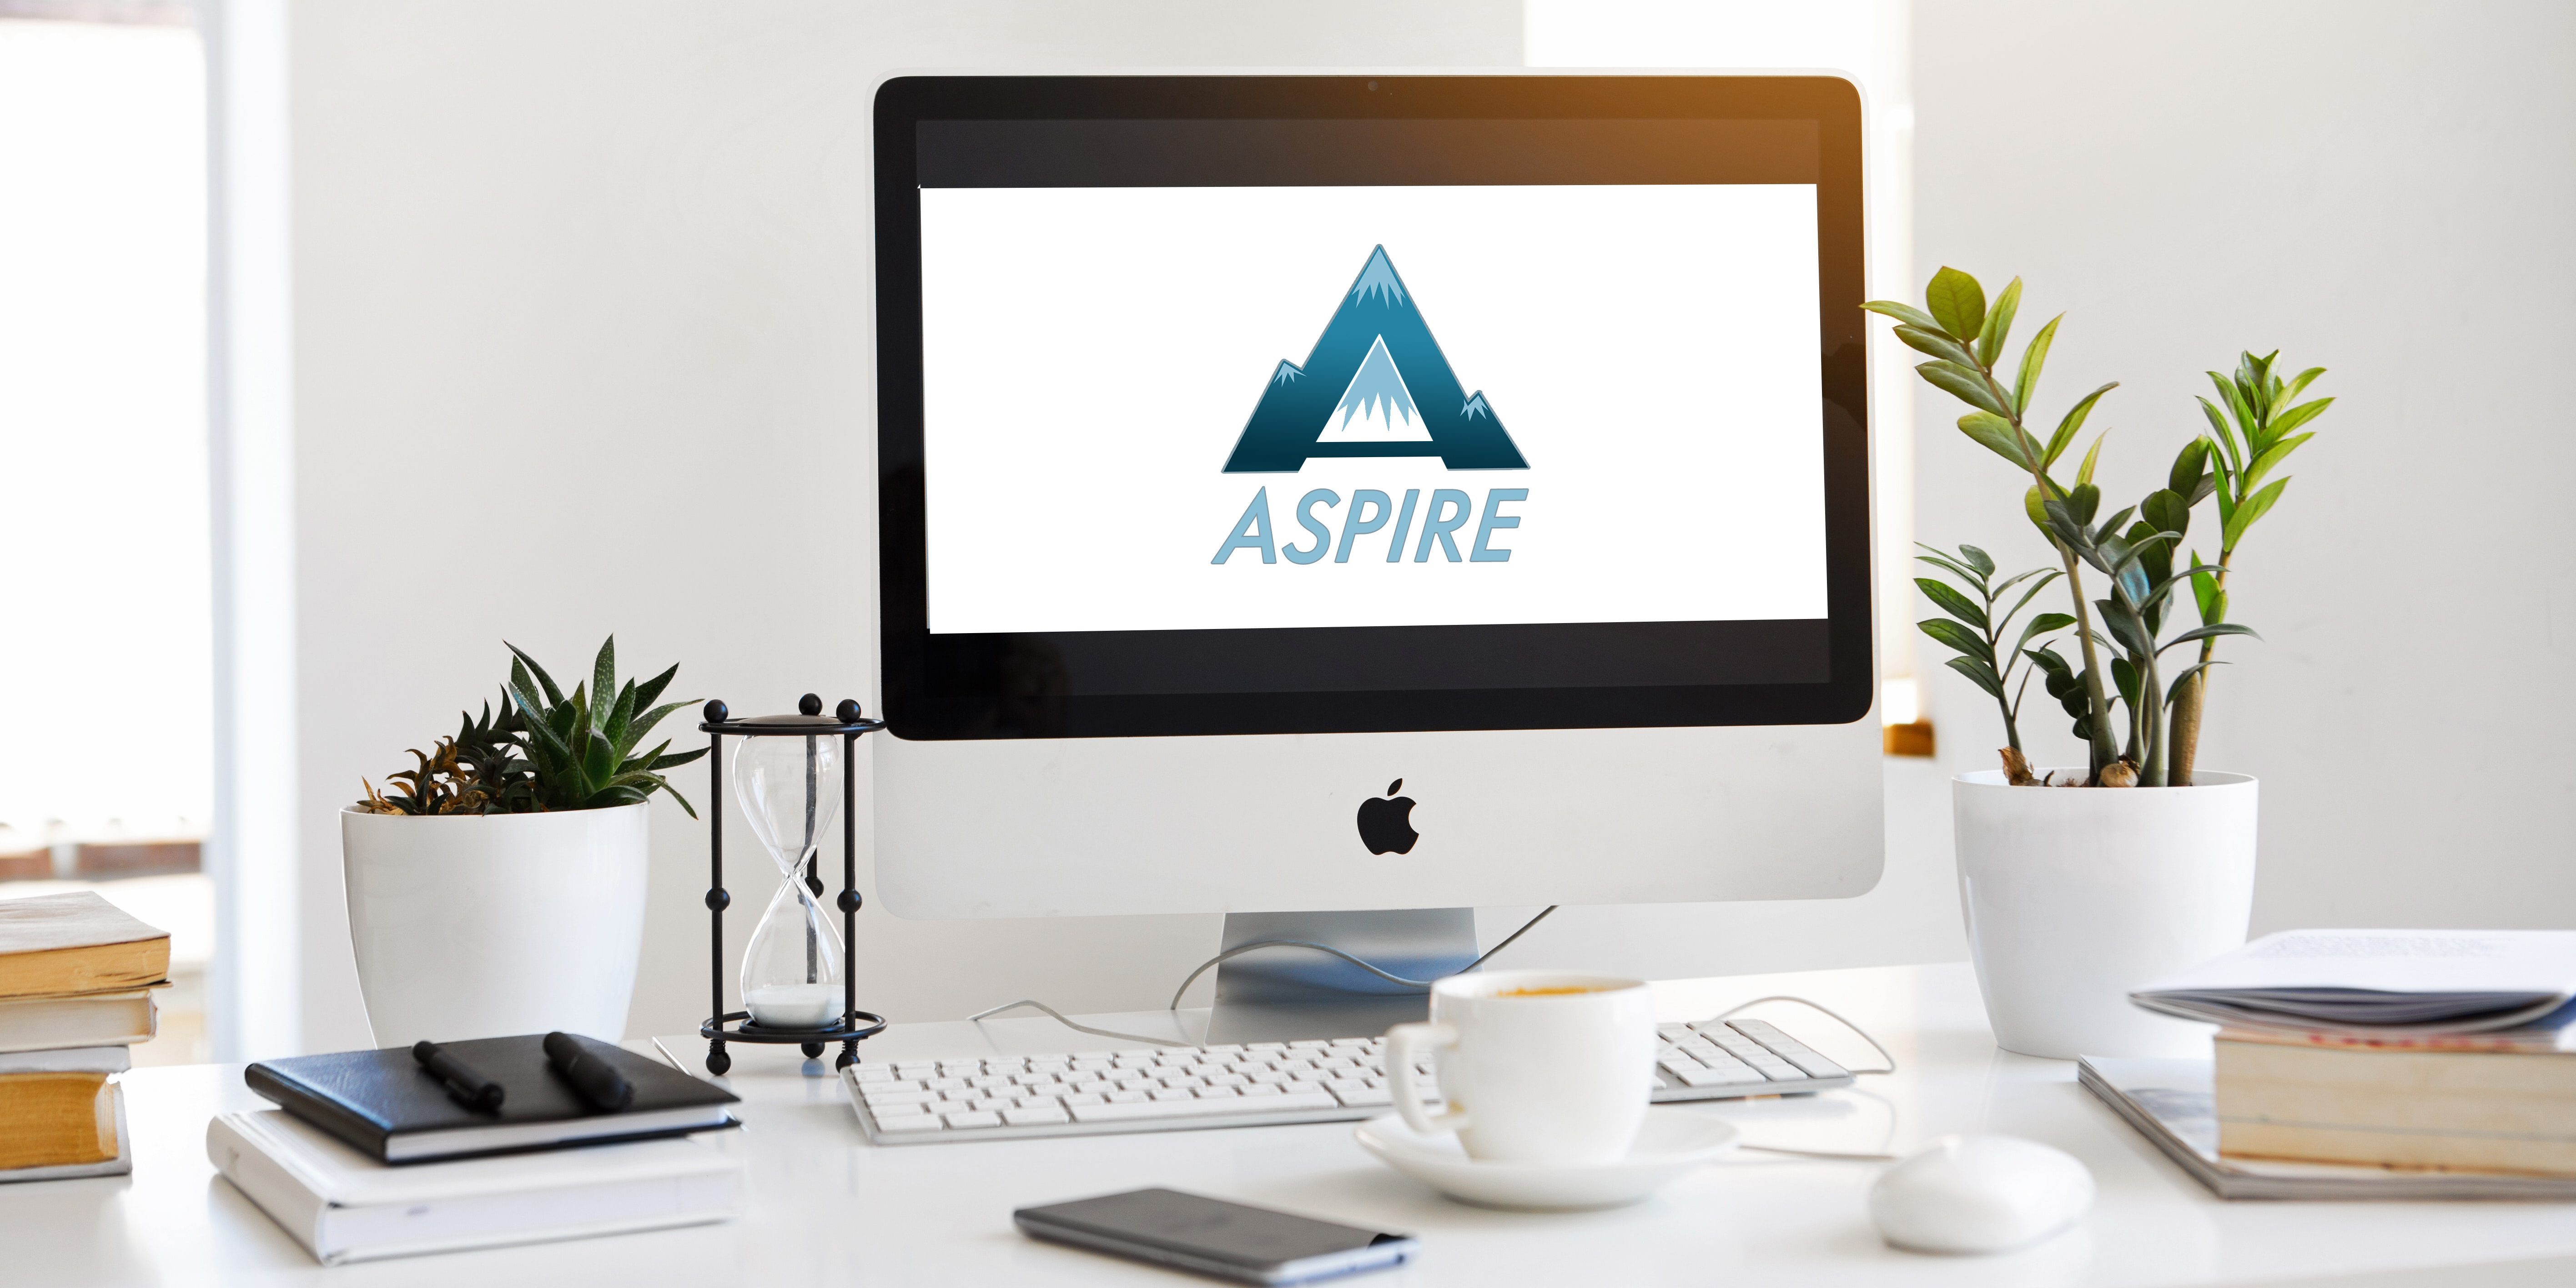 aspire apple-572056 copy